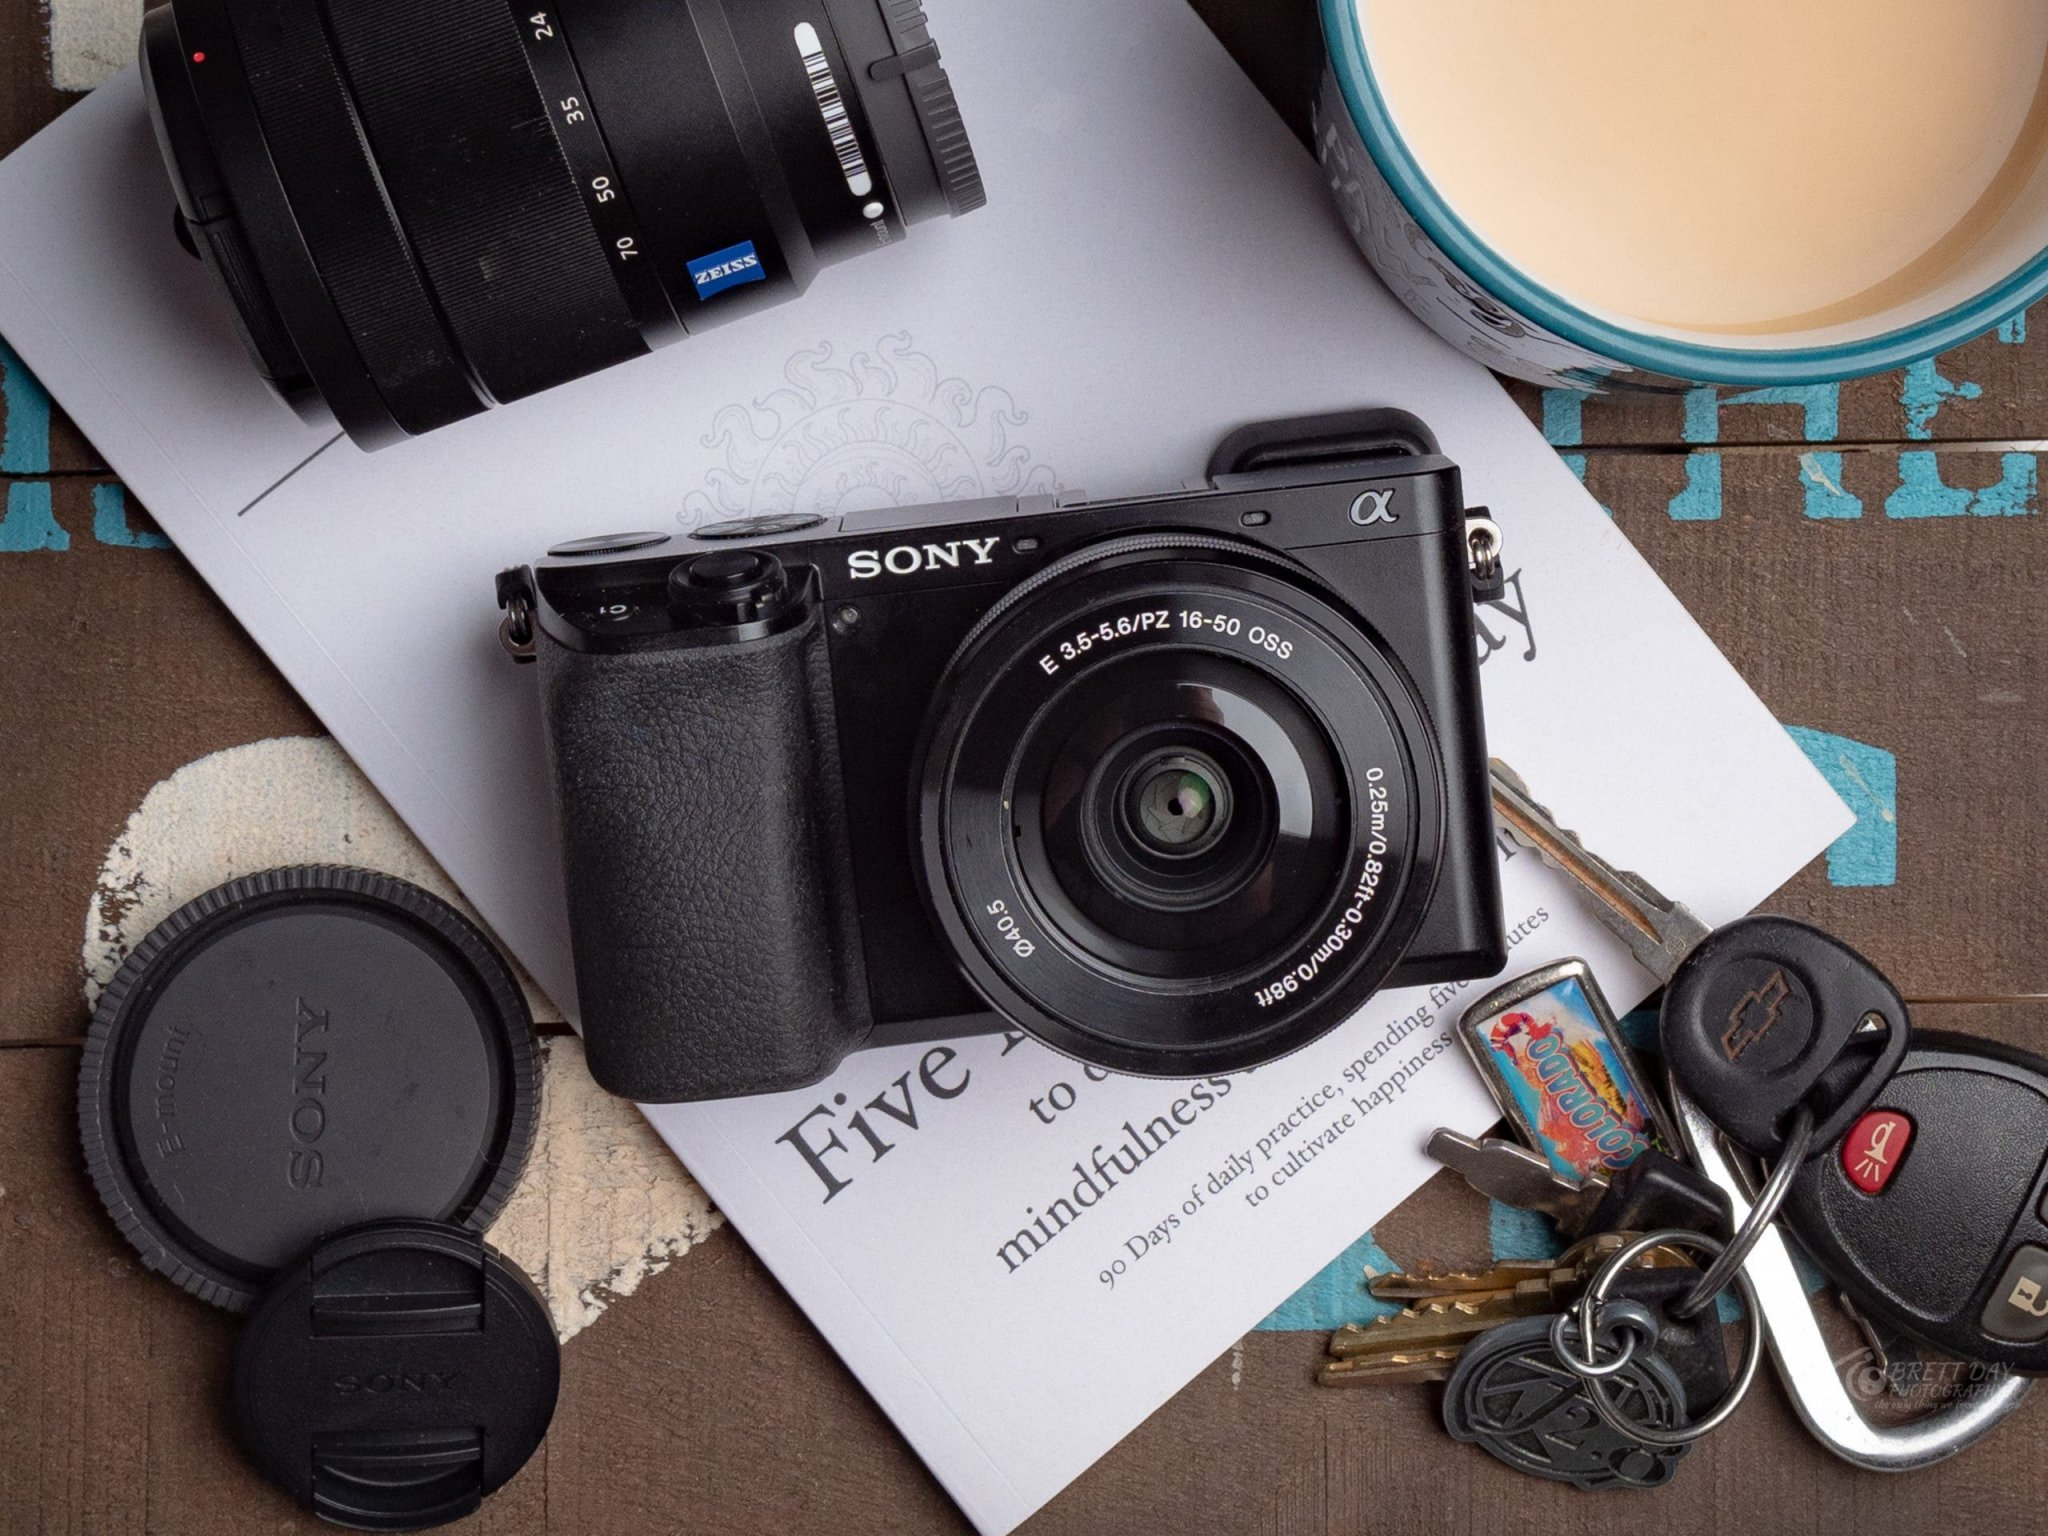 Review: Sony a6100 (The Little Sony Camera That Could)